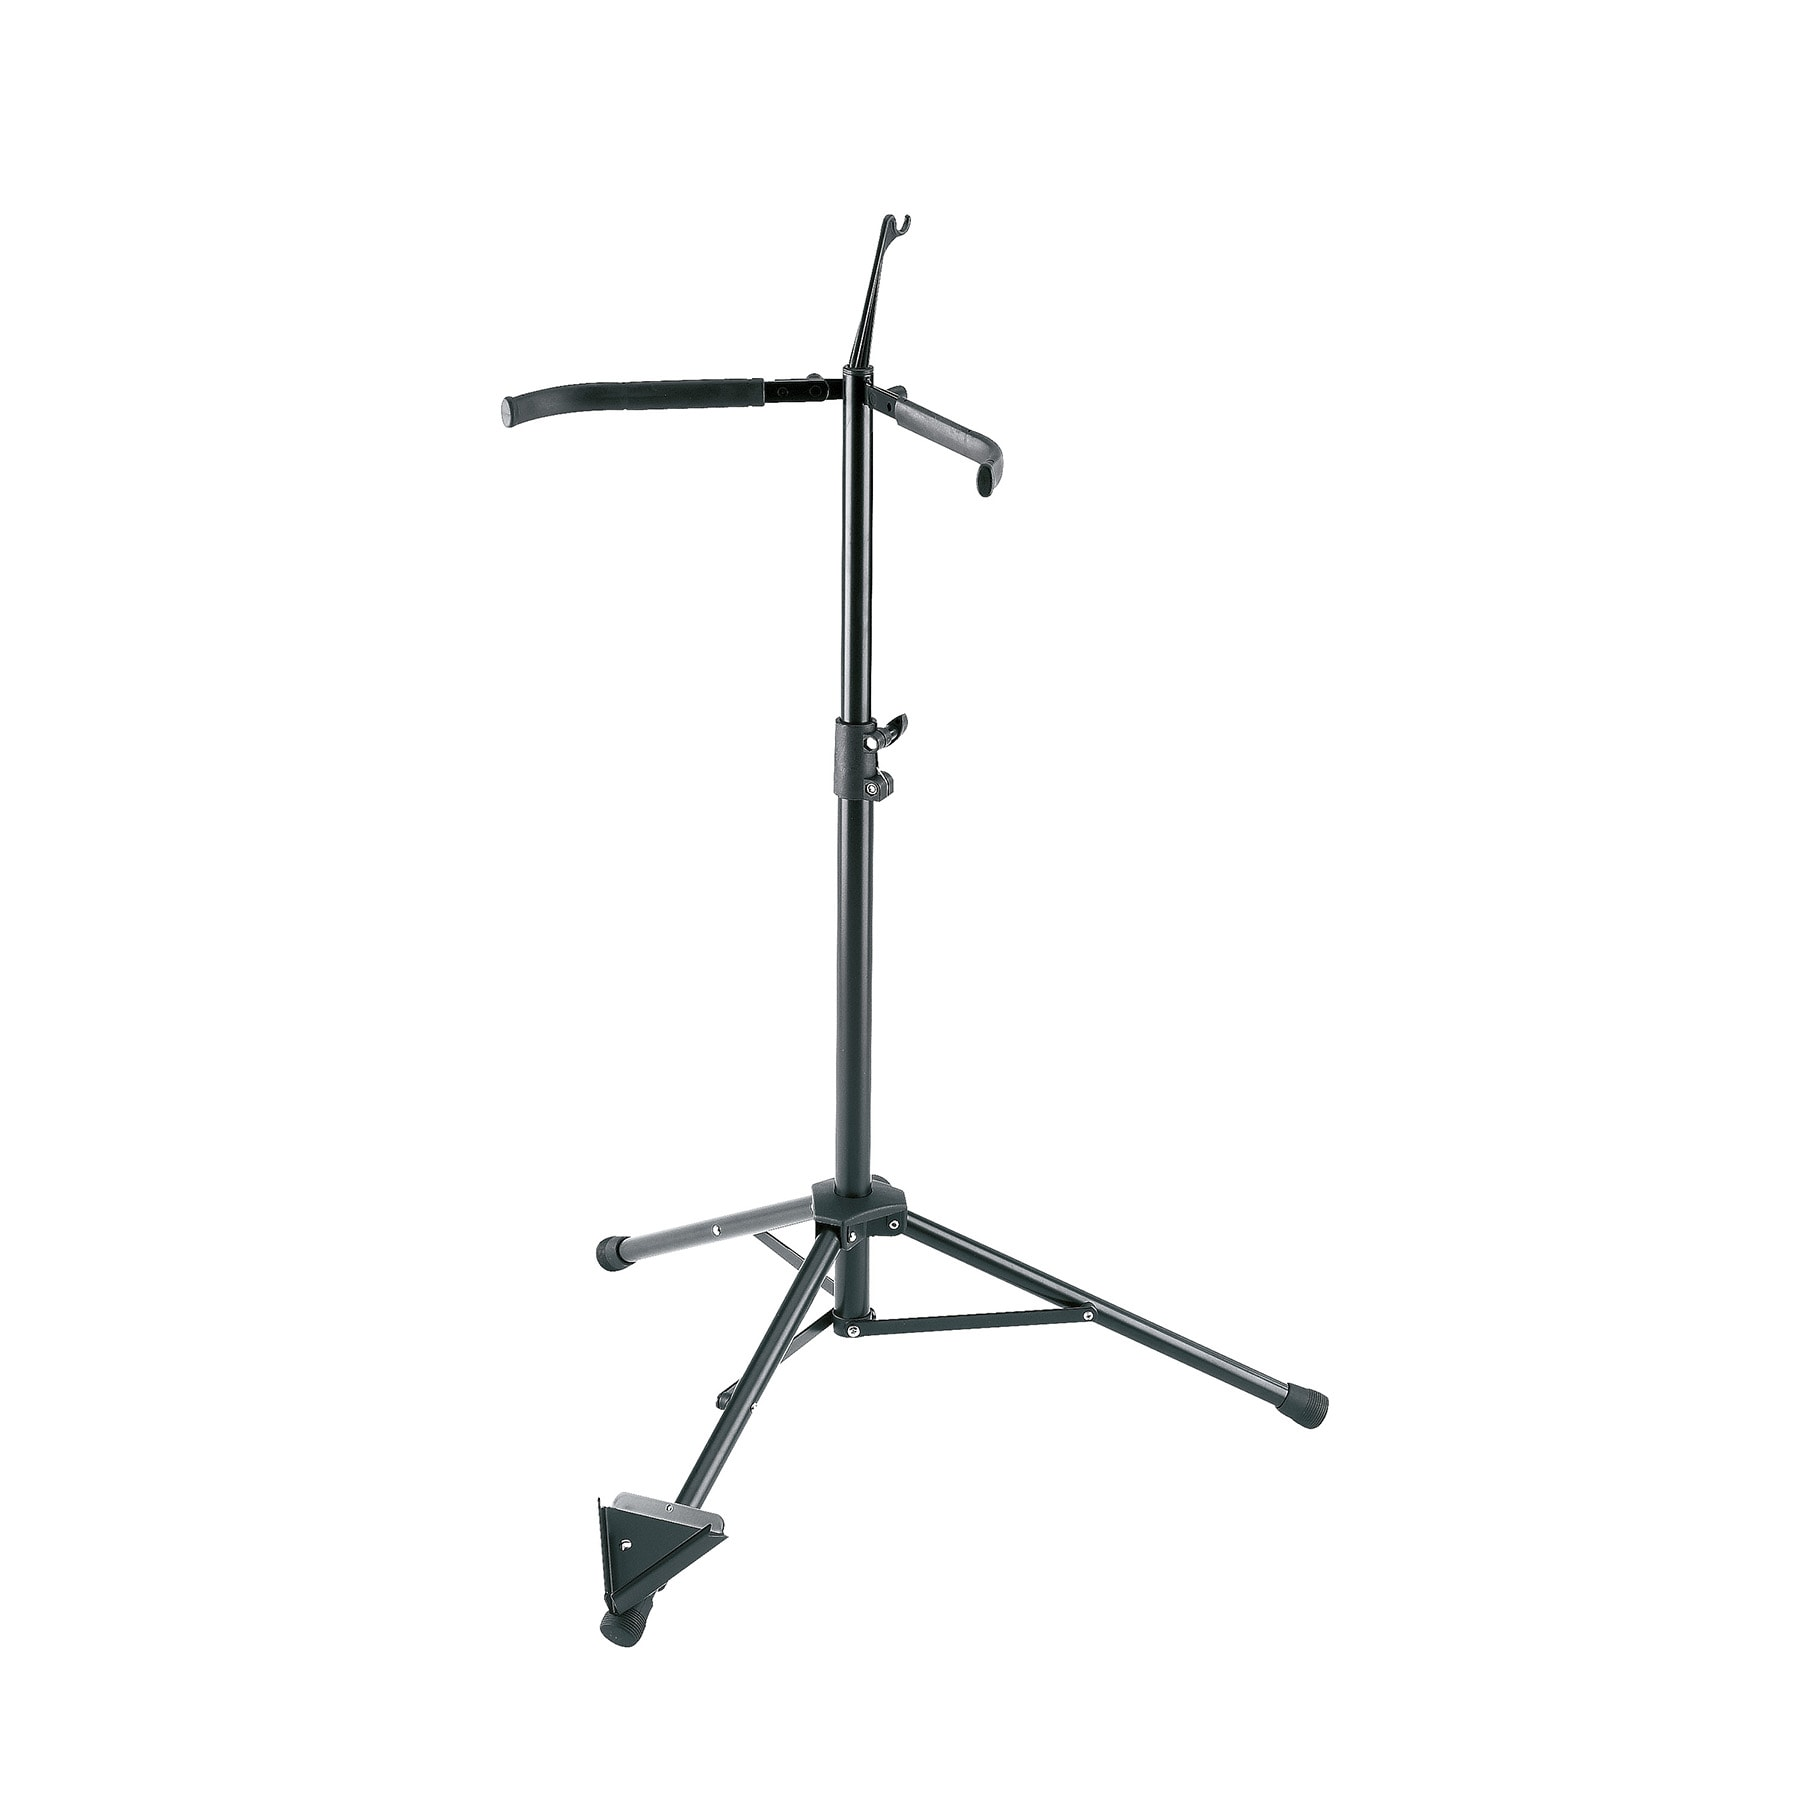 KM141_1 - Cello stand